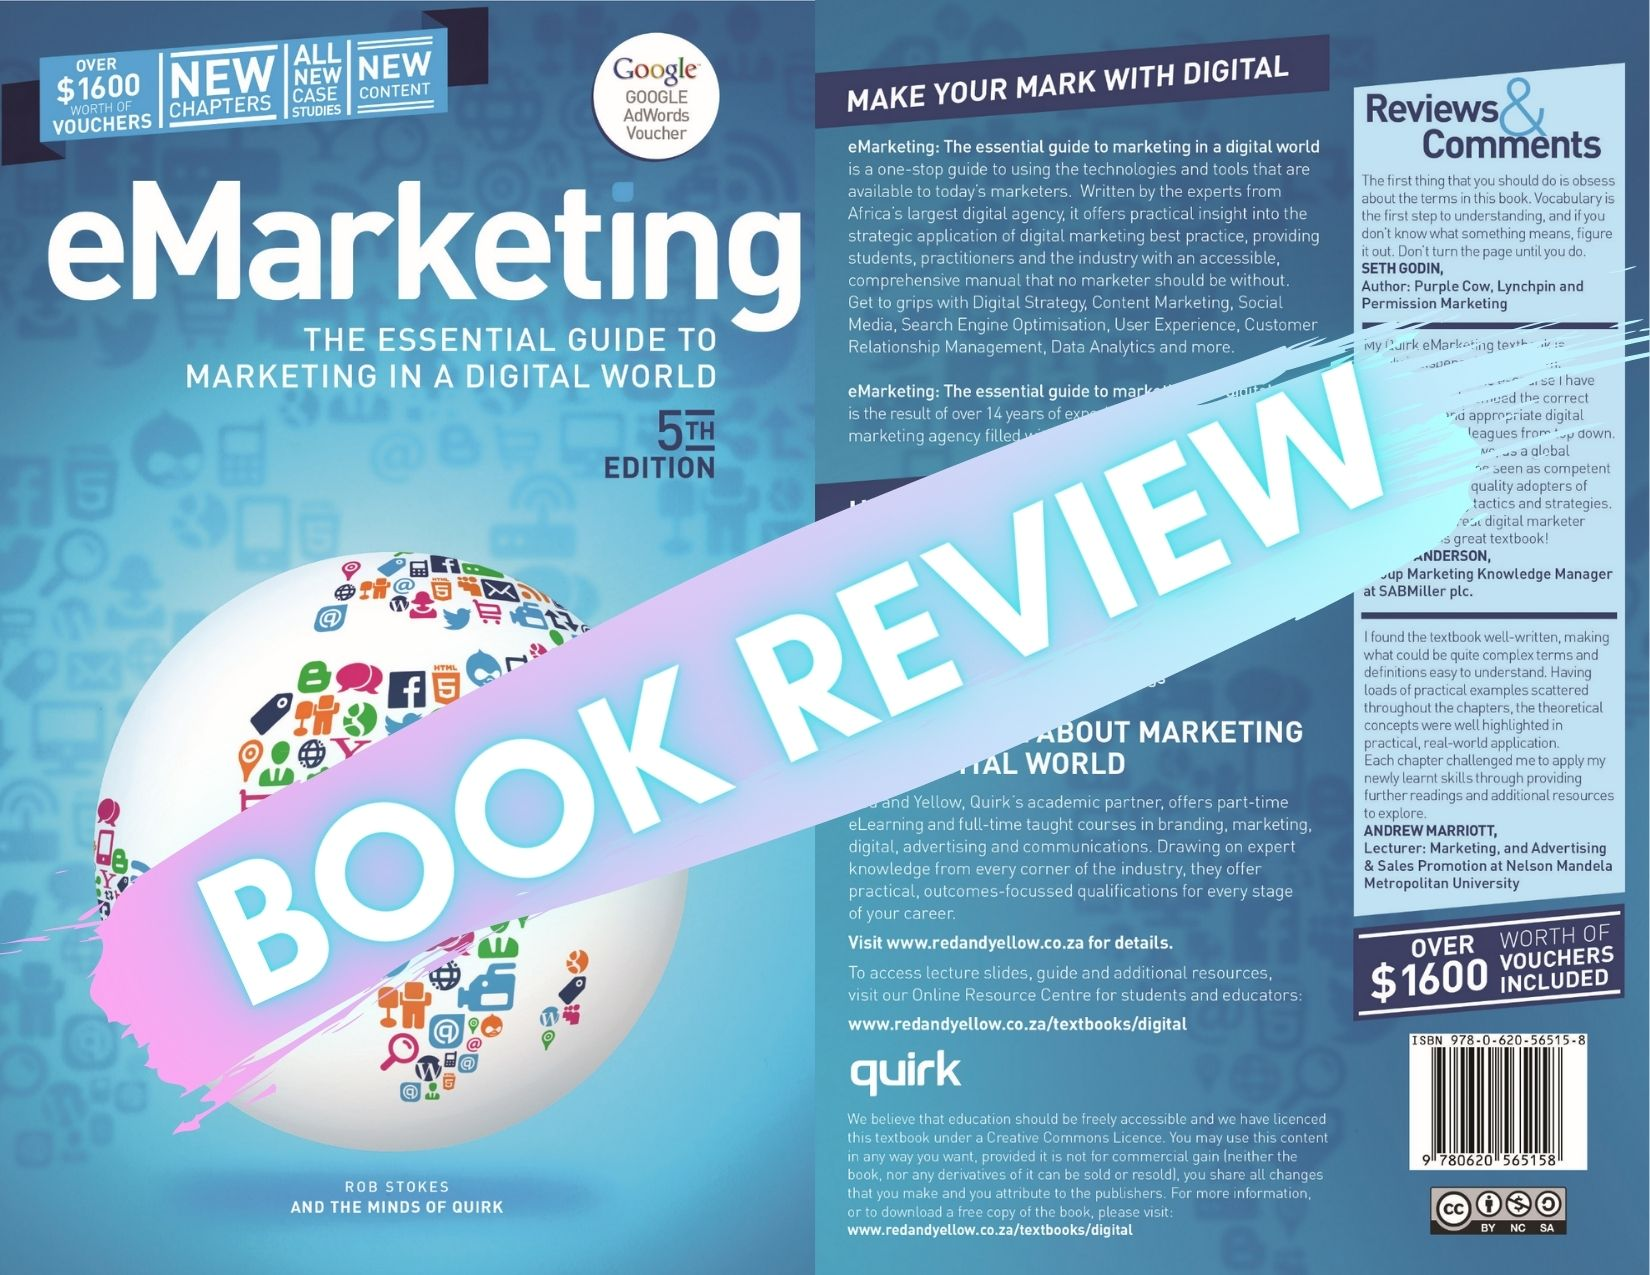 Digital Marketing Textbook: eMarketing – The essential guide to marketing in a digital world 5th Edition review.